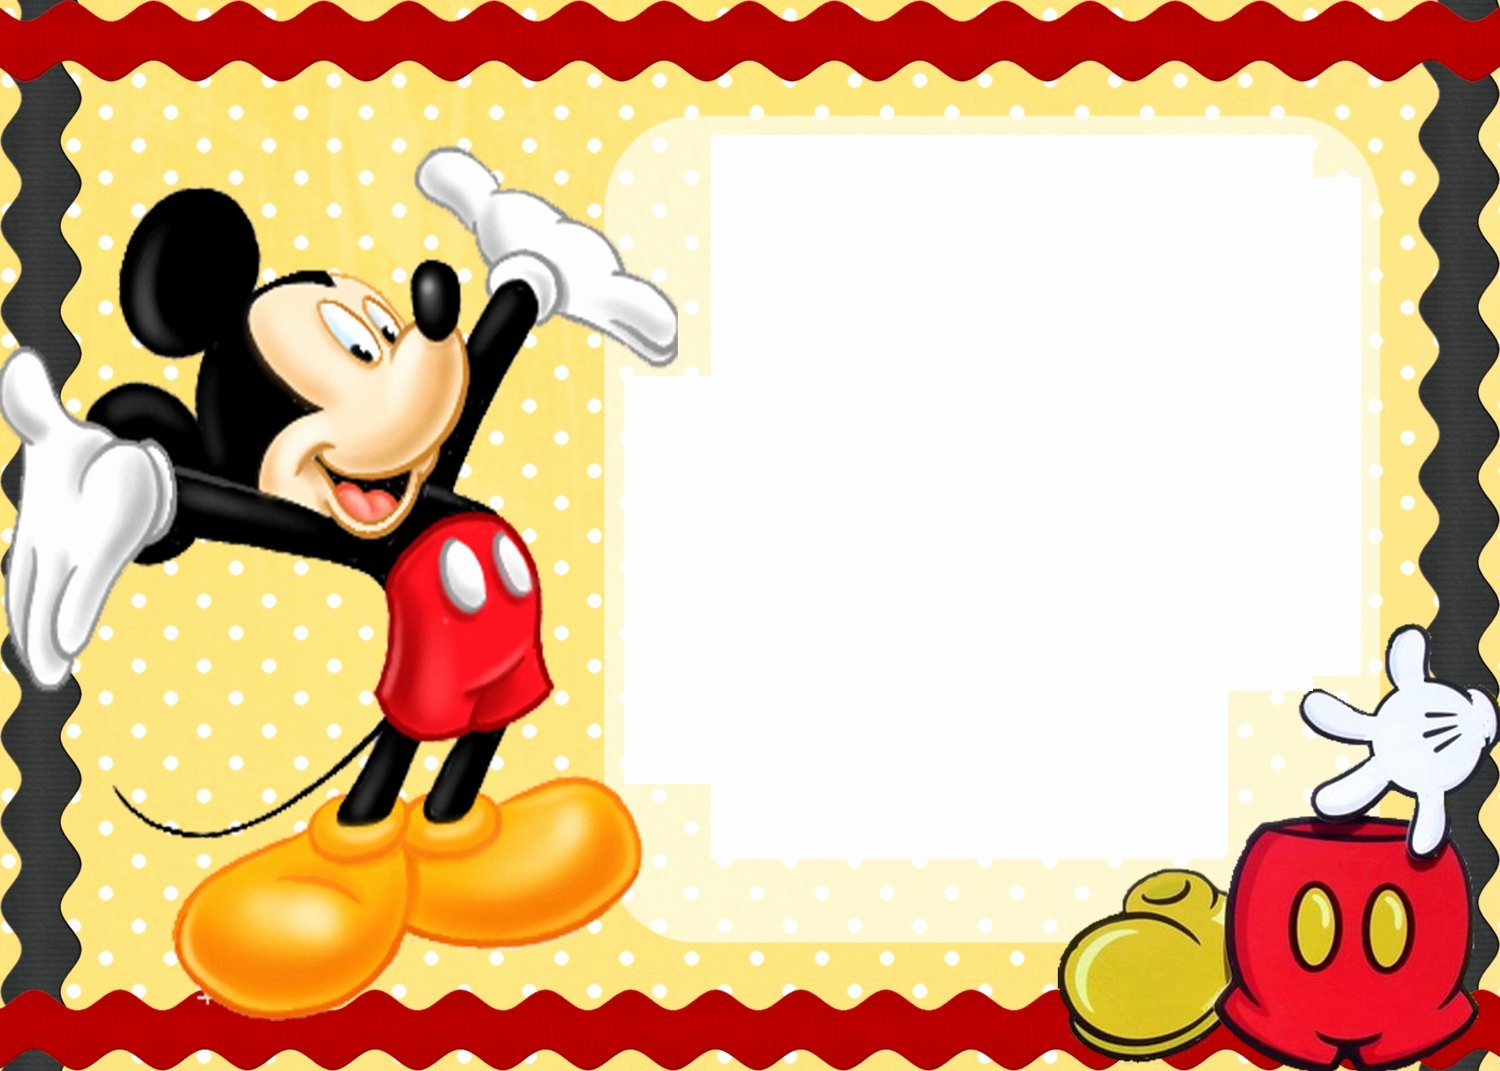 Mickey Mouse Birthday Card Template Inspirational Free Printable Mickey Mouse Birthday Cards